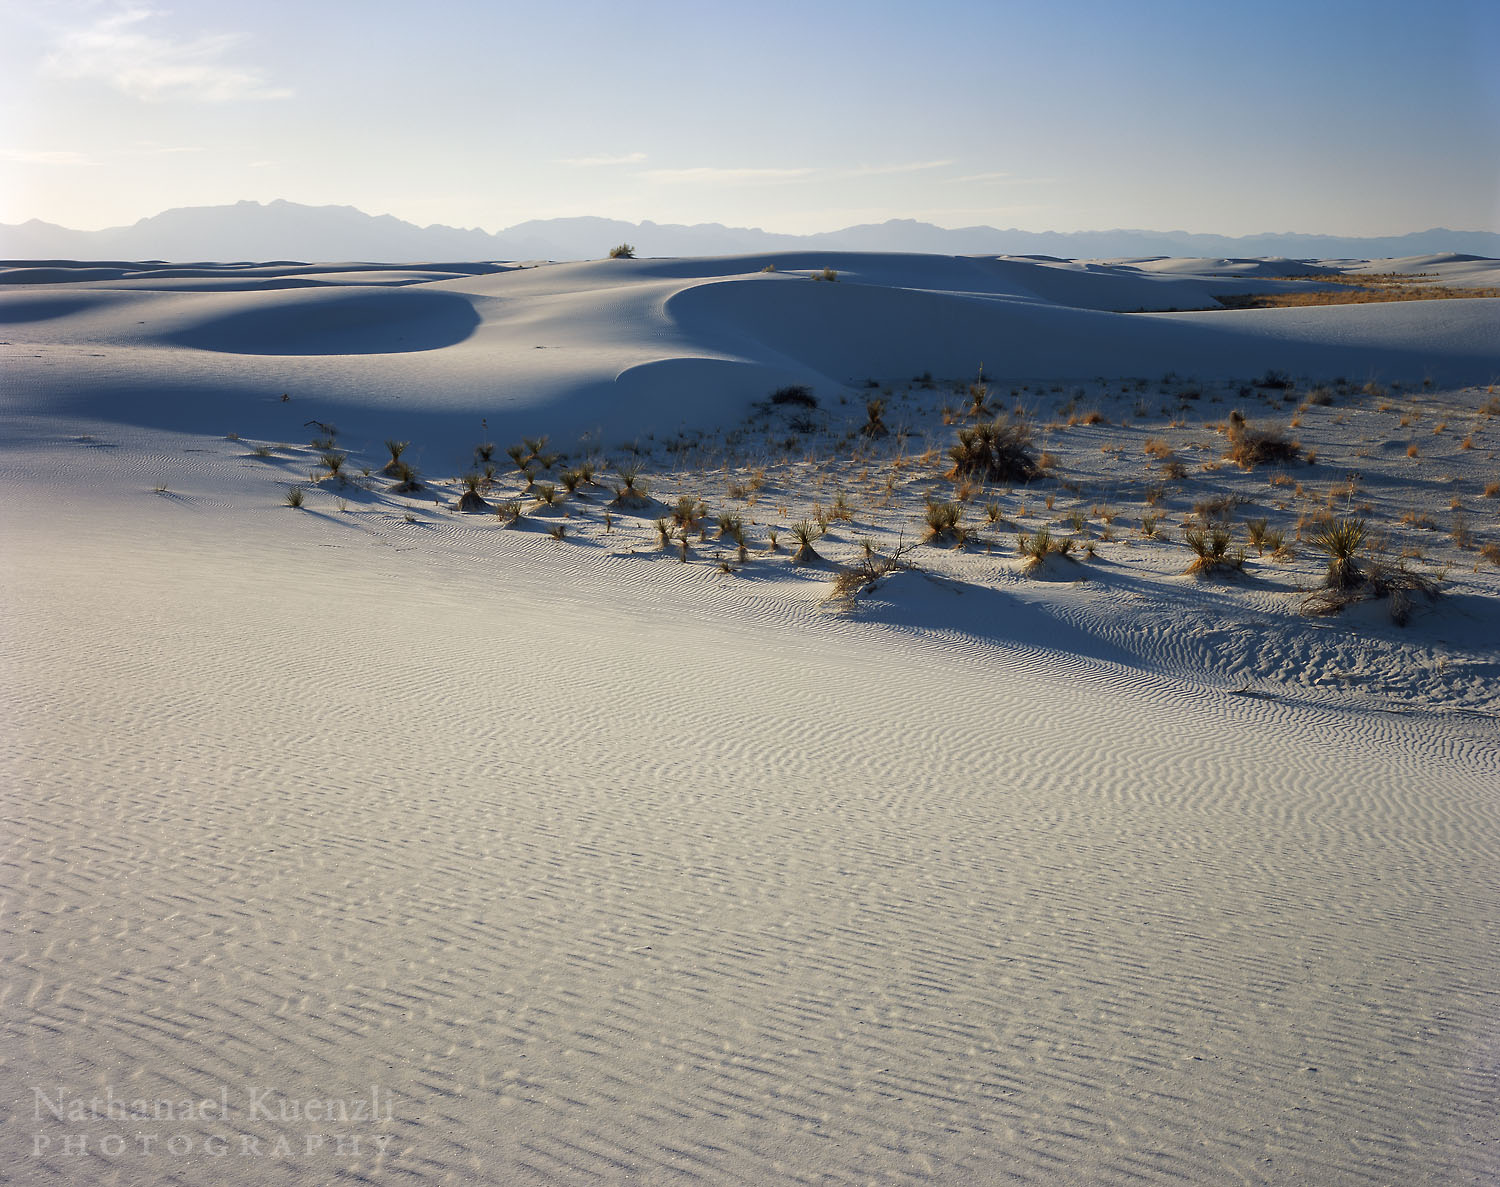 Evening Light, White Sands National Monument, New Mexico, March 2008